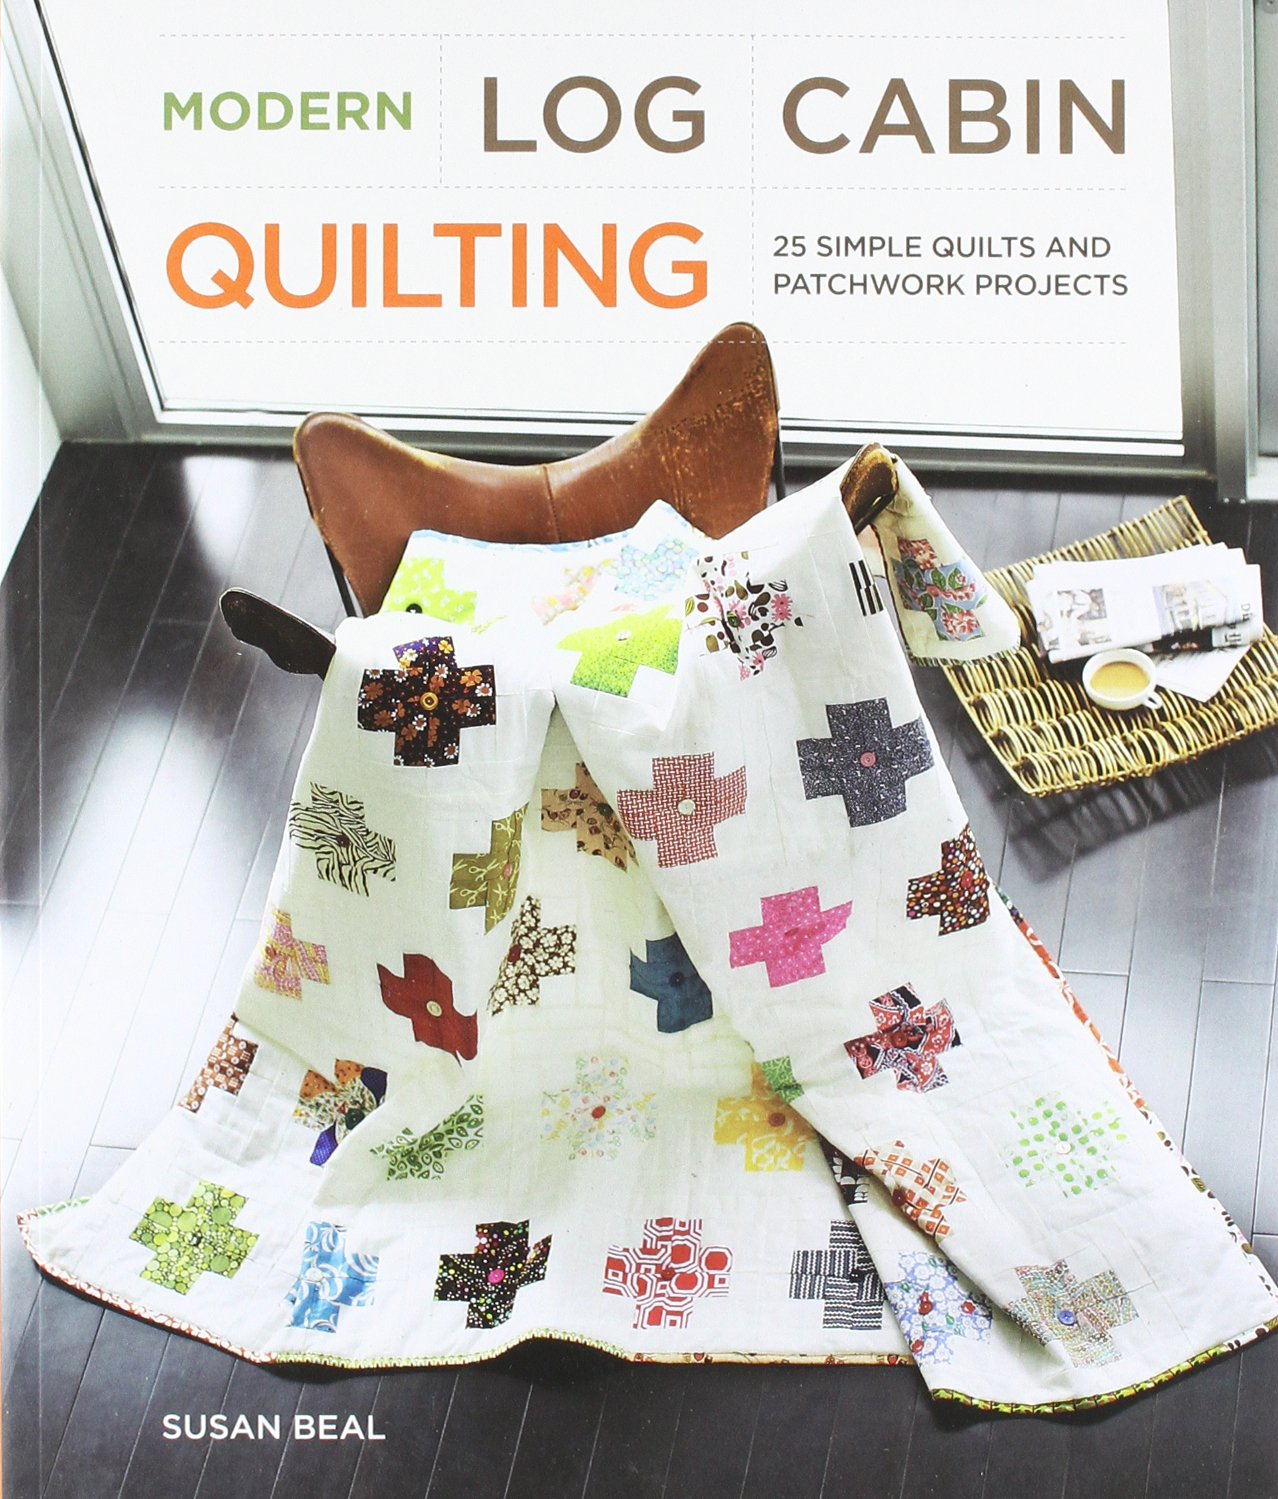 Modern Log Cabin Quilting: 25 Simple Quilts and Patchwork Projects ... : quilt books amazon - Adamdwight.com